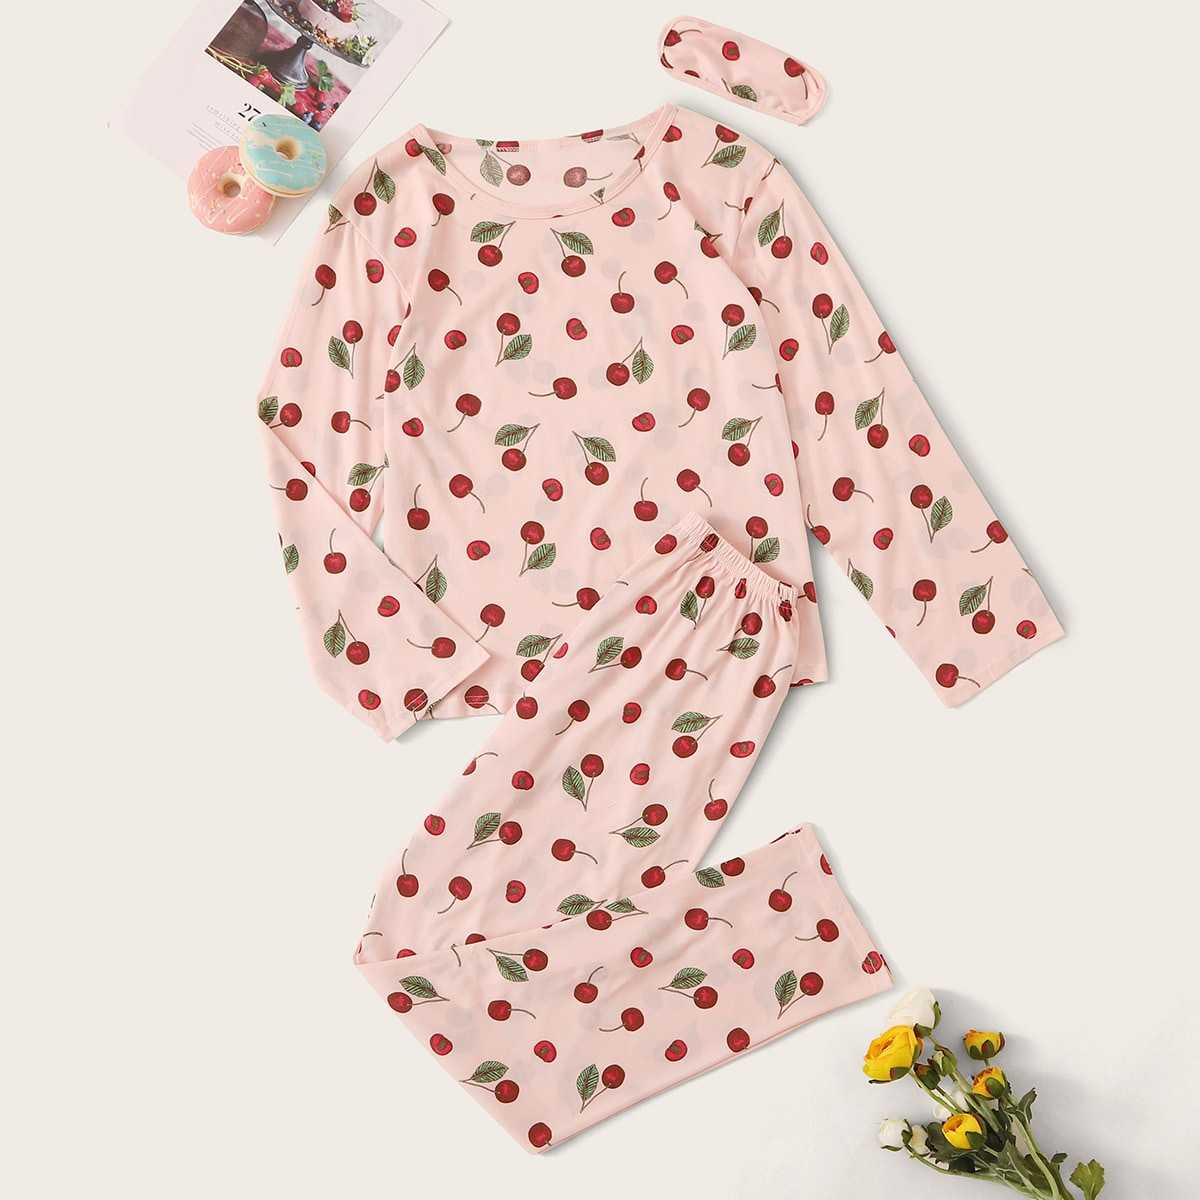 Cherry Print Pajama Set With Eye Mask in Pink by ROMWE on GOOFASH